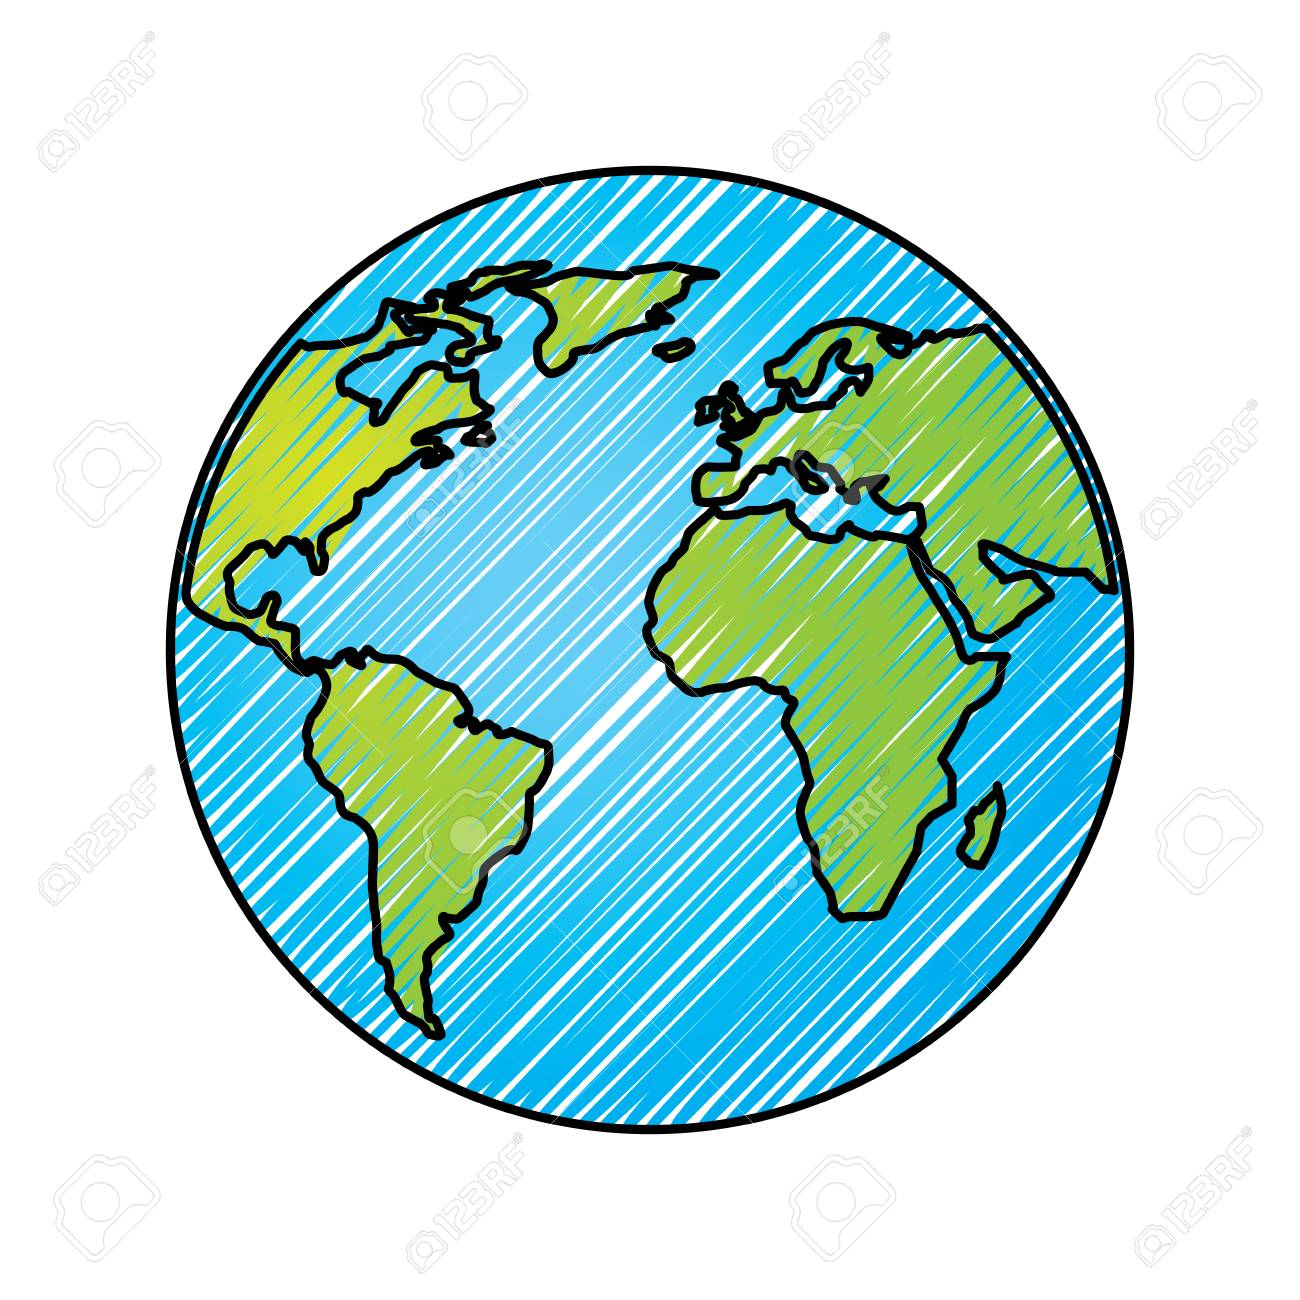 Globe world earth planet map icon vector illustration drawing graphic - 96066304